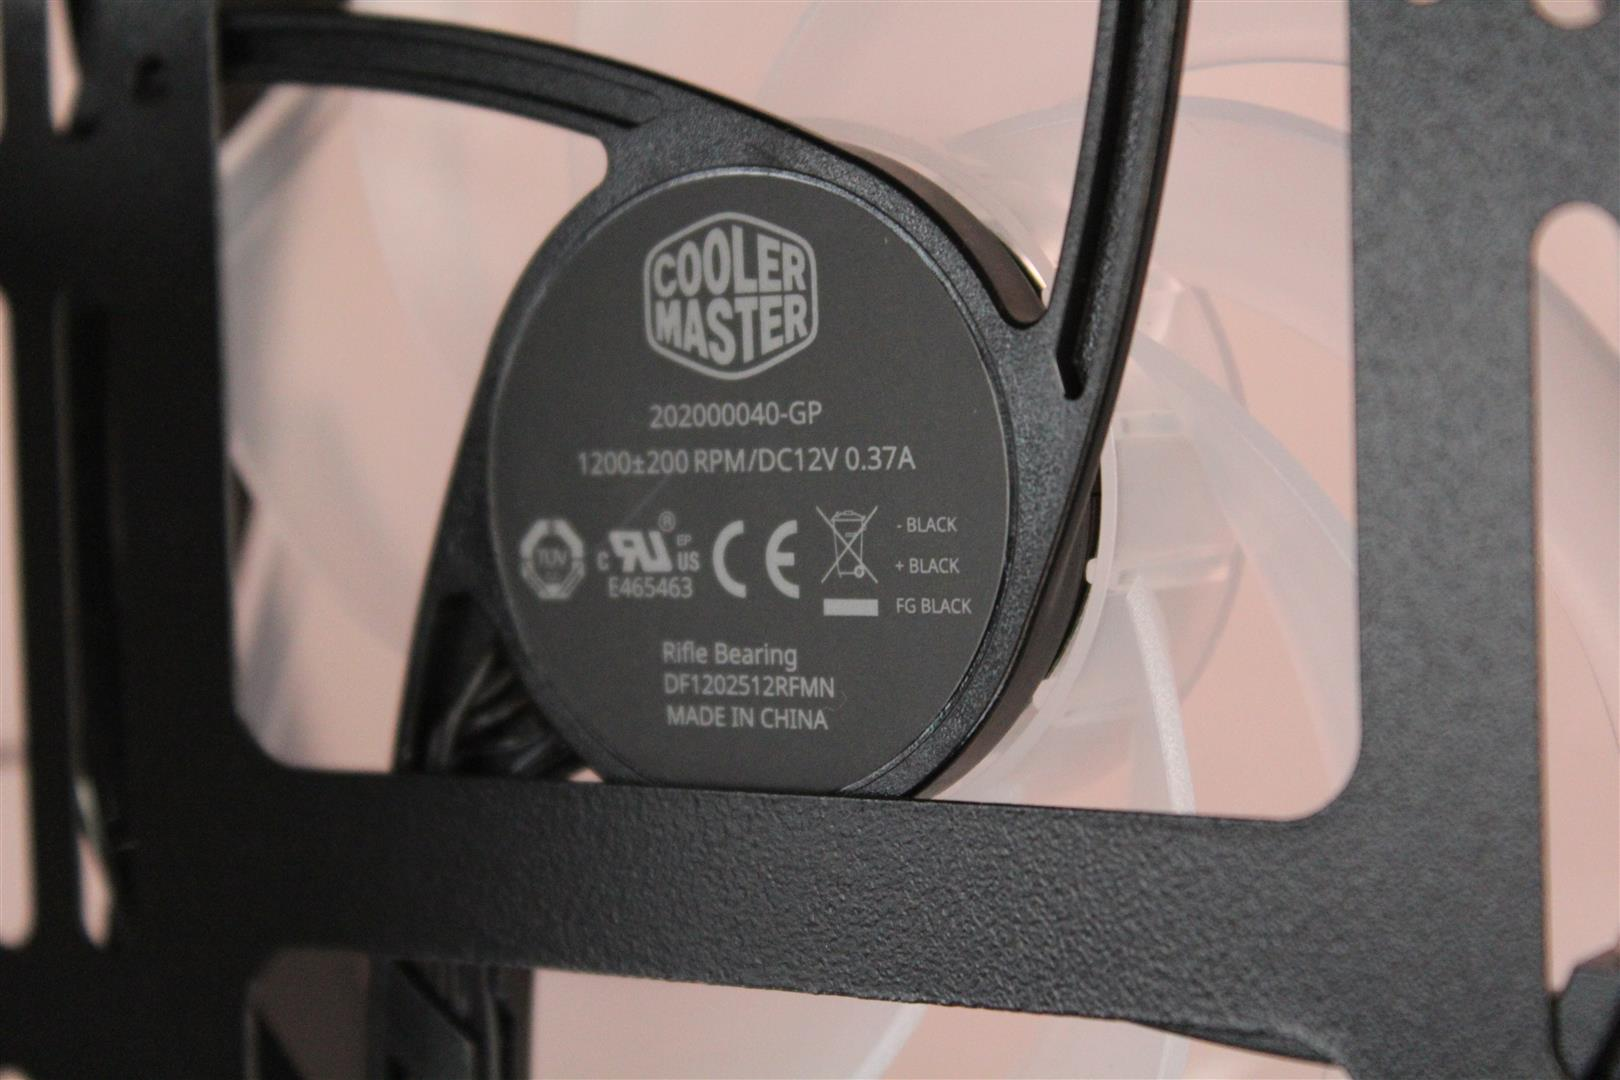 Cooler Master Masterbox Lite 5 Rgb Case Review Pc Tek Reviews 3 Pin Fan Wiring Diagram The Darkmirror Front Panel Is Made From Plexiglas And Comes Off Easily For Mentainence As One Have To Do A Lot Of Dust Cleaning With This